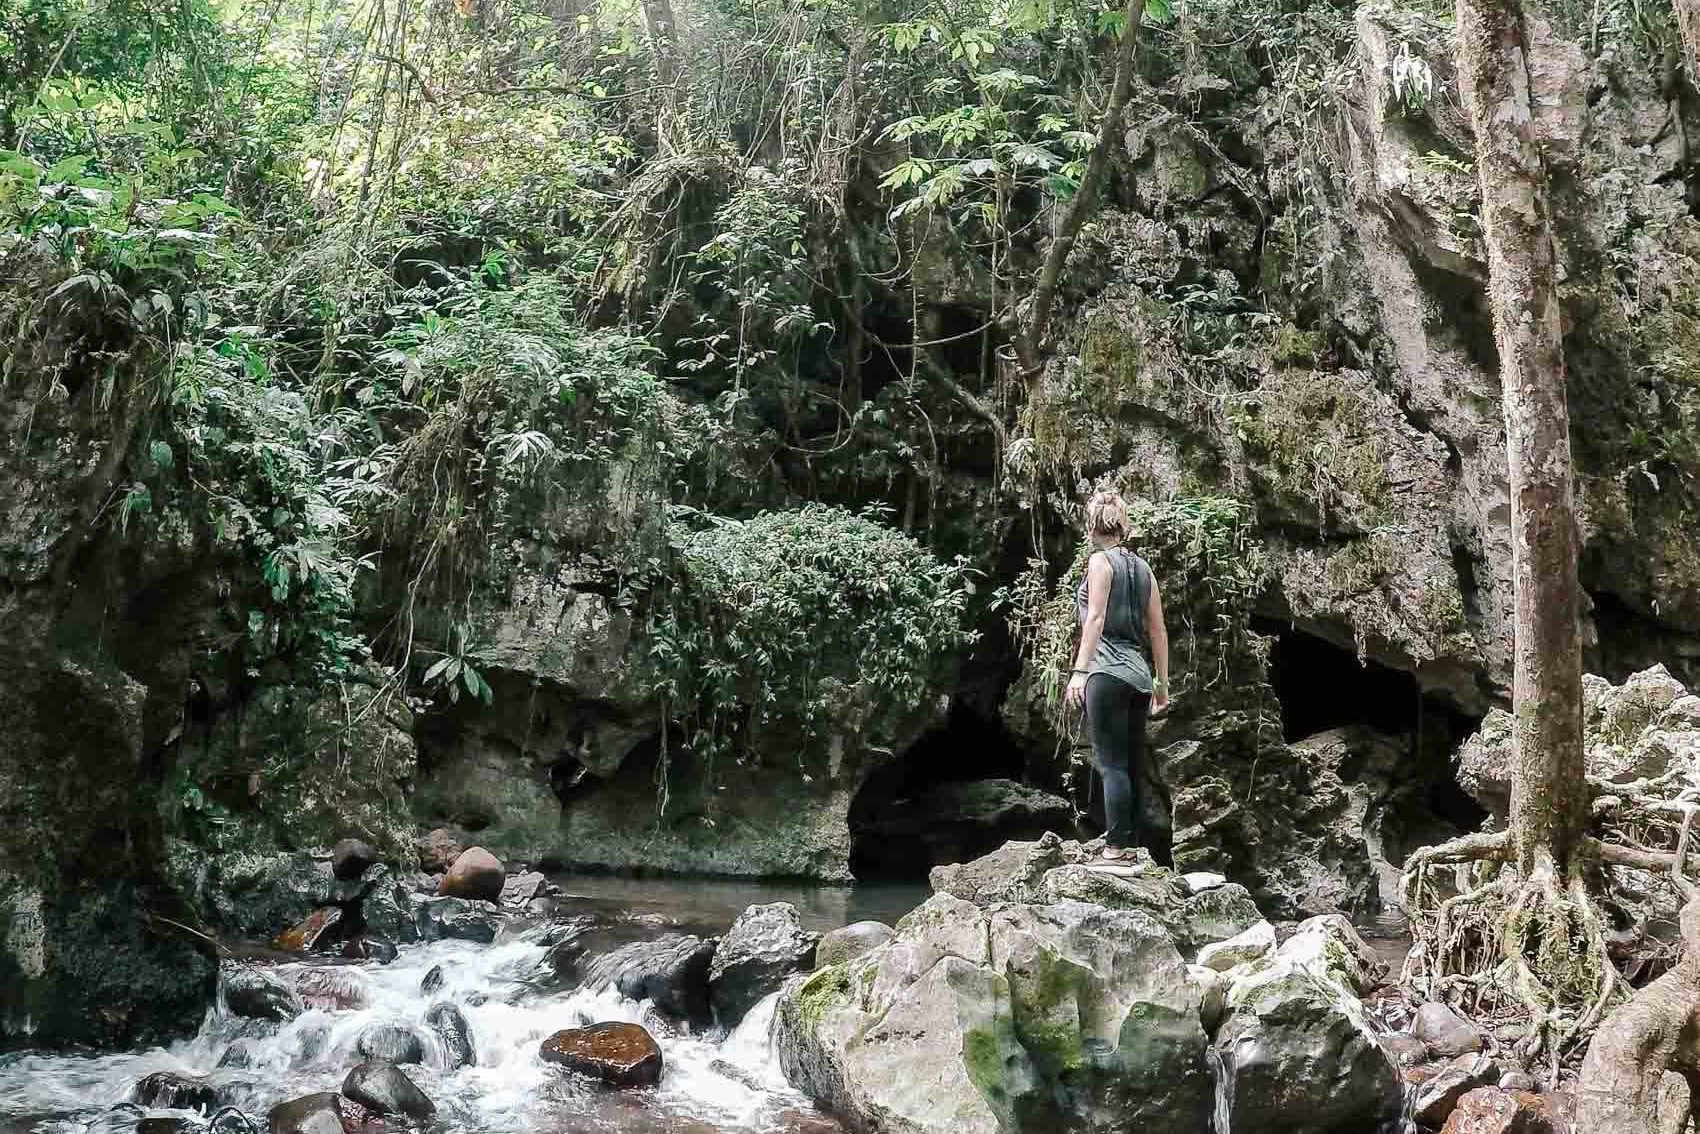 Hannah standing on rocks near a waterfall and cave in Khao Sok National Park in Thailand